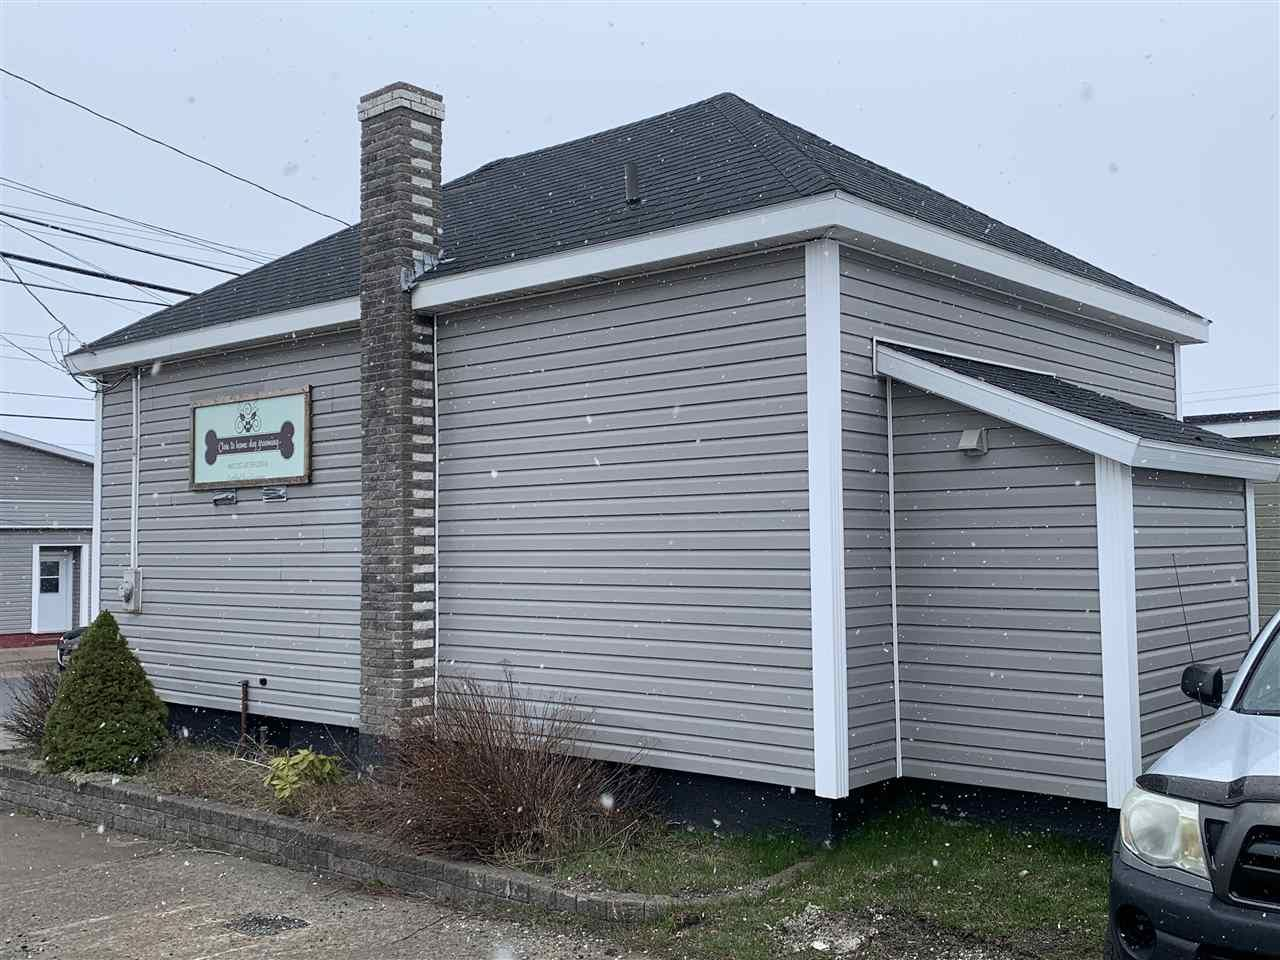 Photo 4: Photos: 3320 Plummer Avenue in New Waterford: 204-New Waterford Residential for sale (Cape Breton)  : MLS®# 202007536